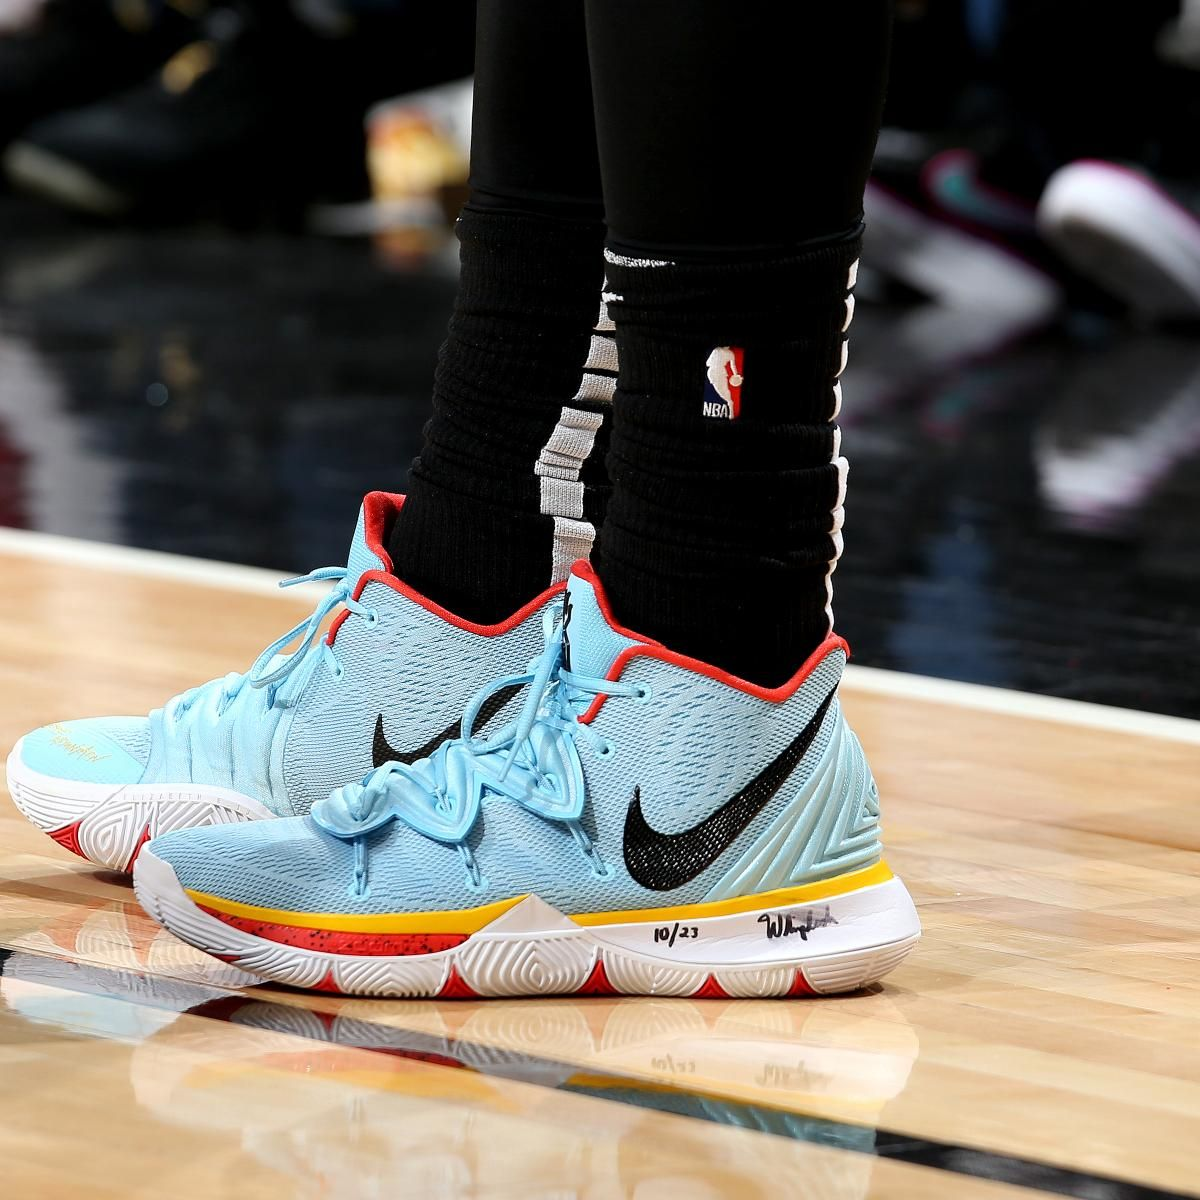 B R Kicks keeps you up to date with all the latest footwear trends on the  NBA hardwood. Here s a look at the cleanest looks from Saturday s action. a3d5fc482